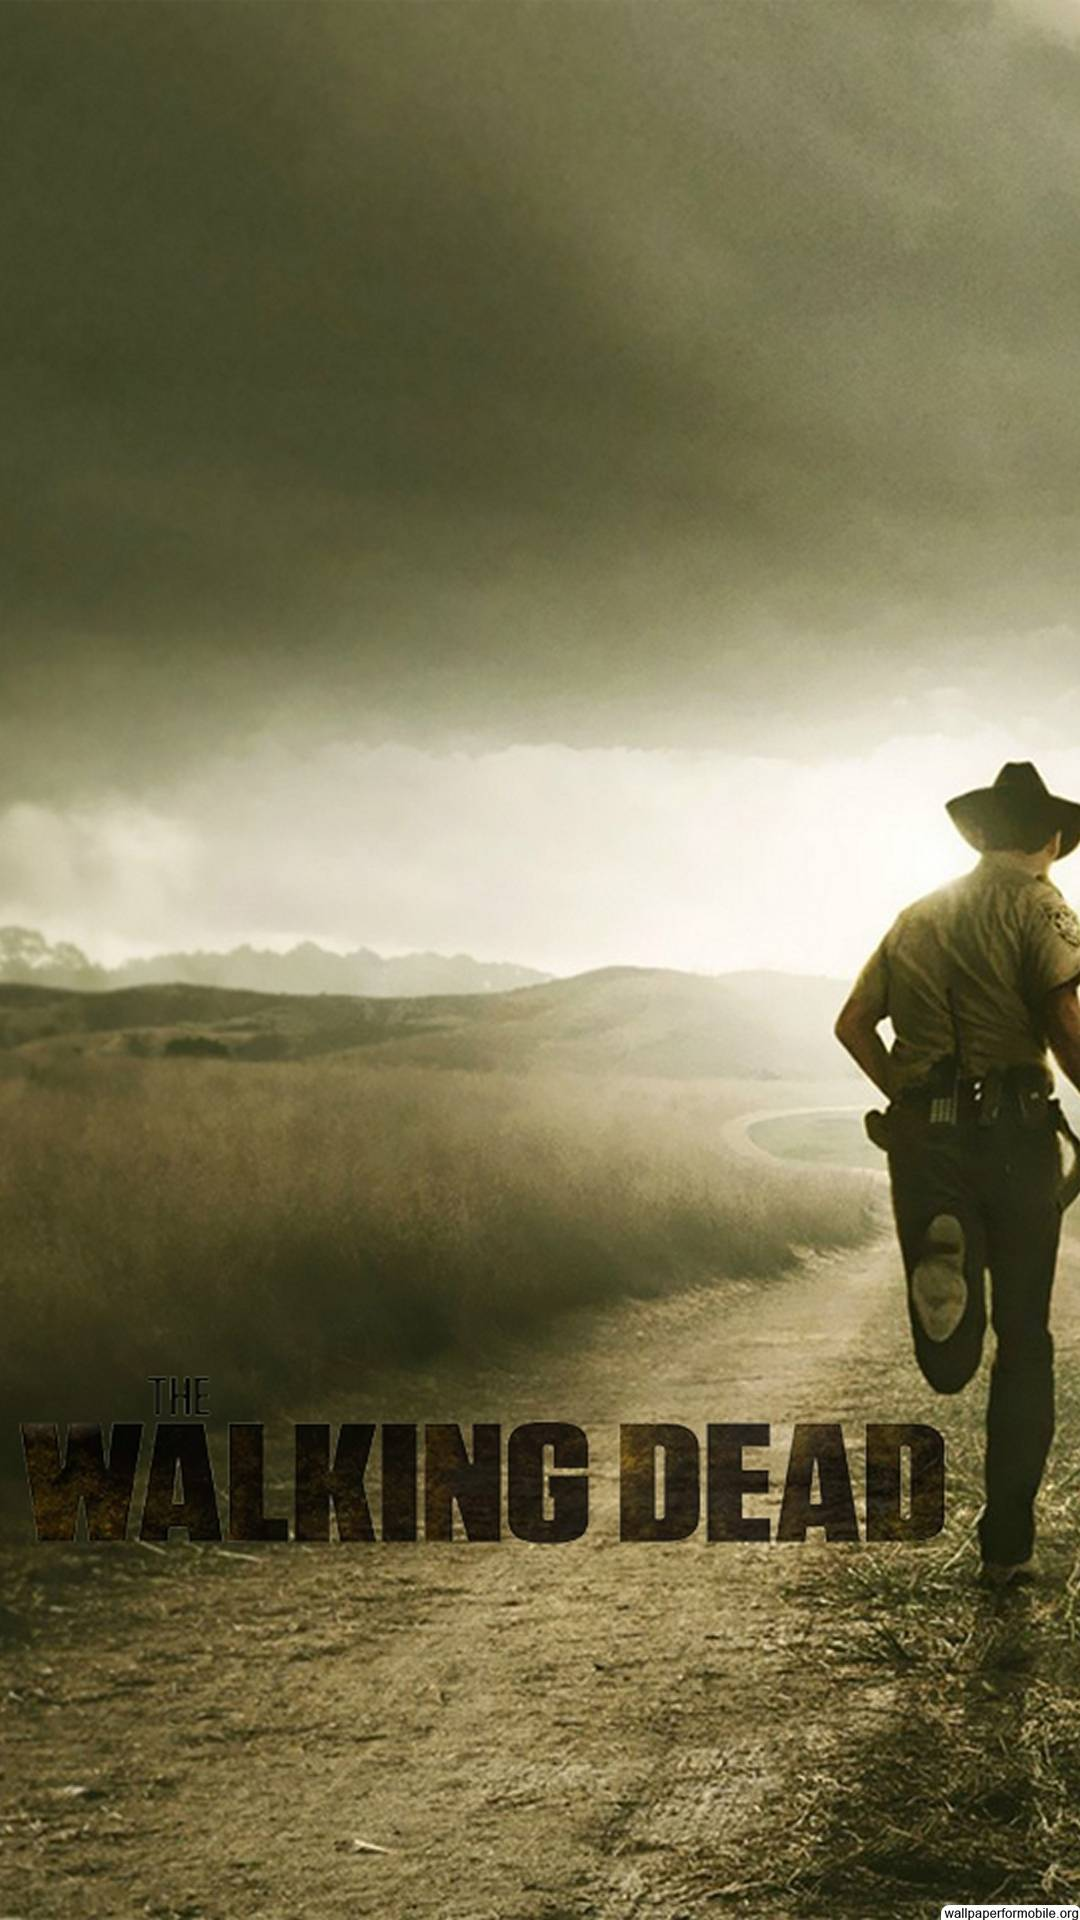 The Walking Dead Wallpapers For Iphone | Wallpaper for Mobile